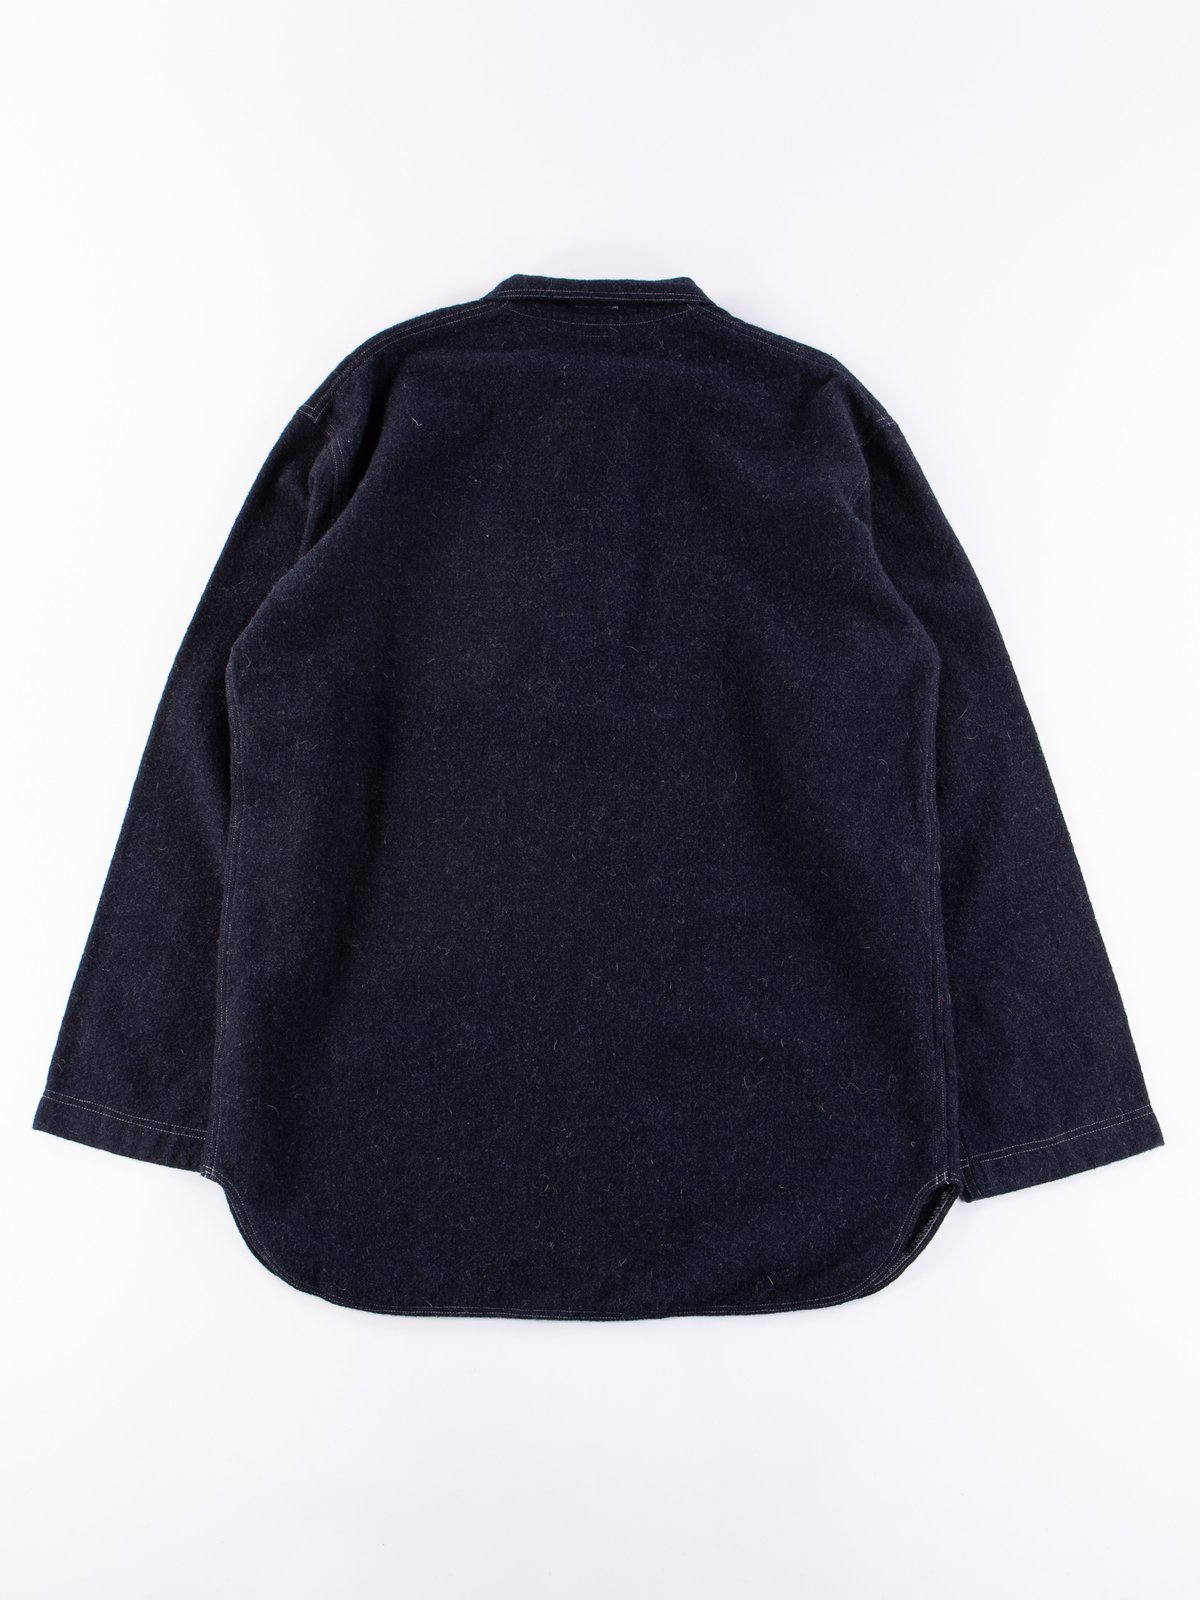 Navy Weavers Stock Pullover Tail Shirt - Image 5